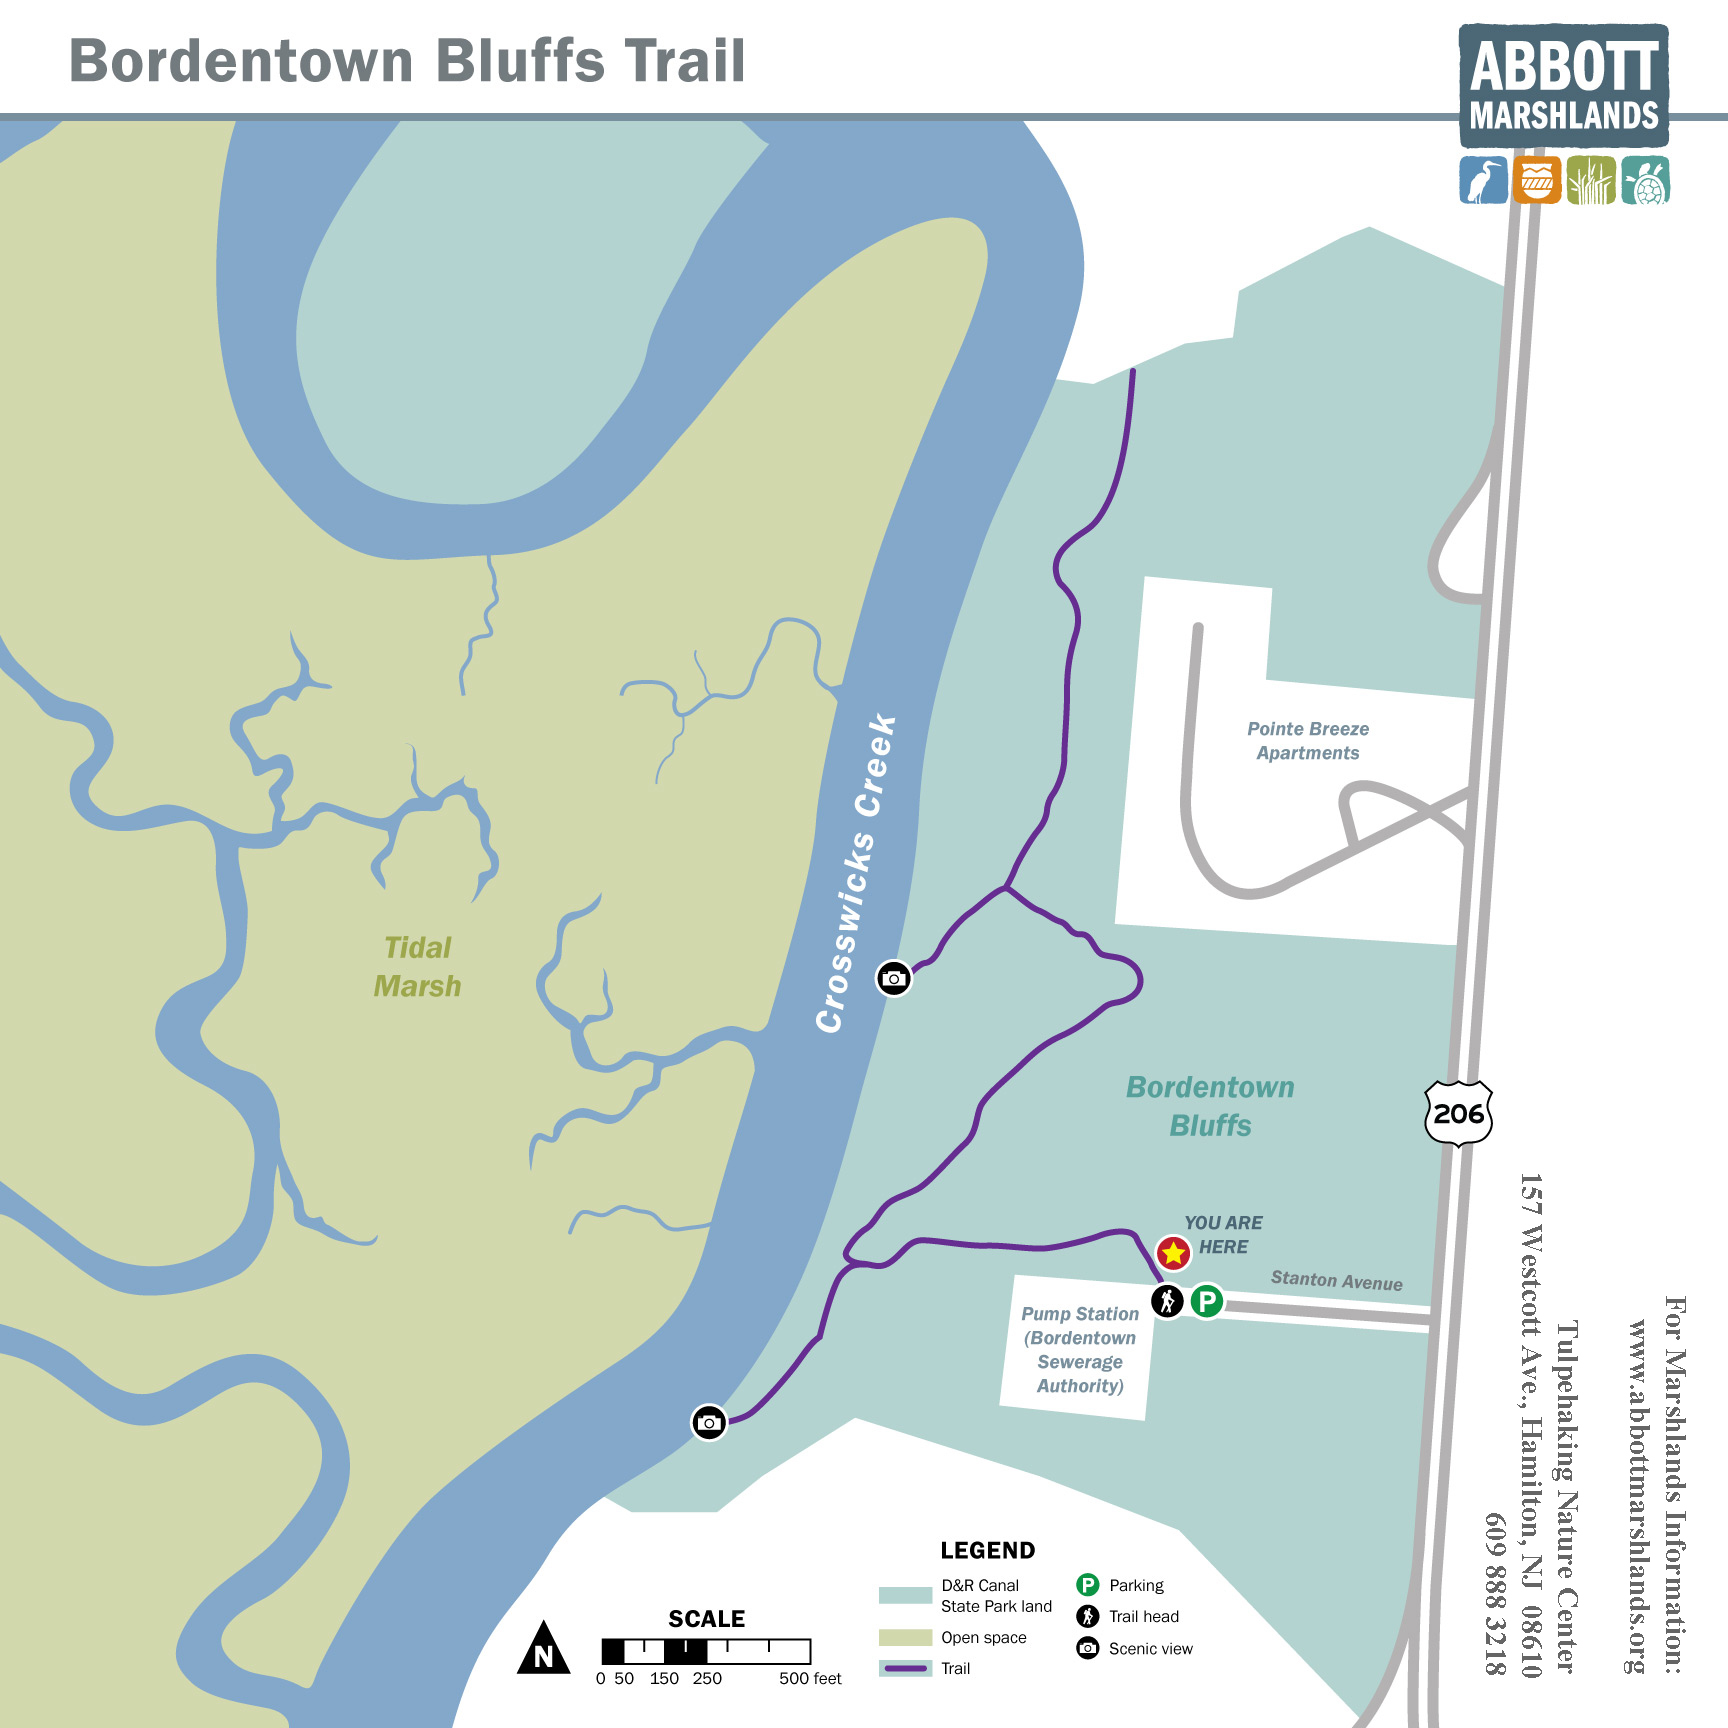 Bordentown Bluffs